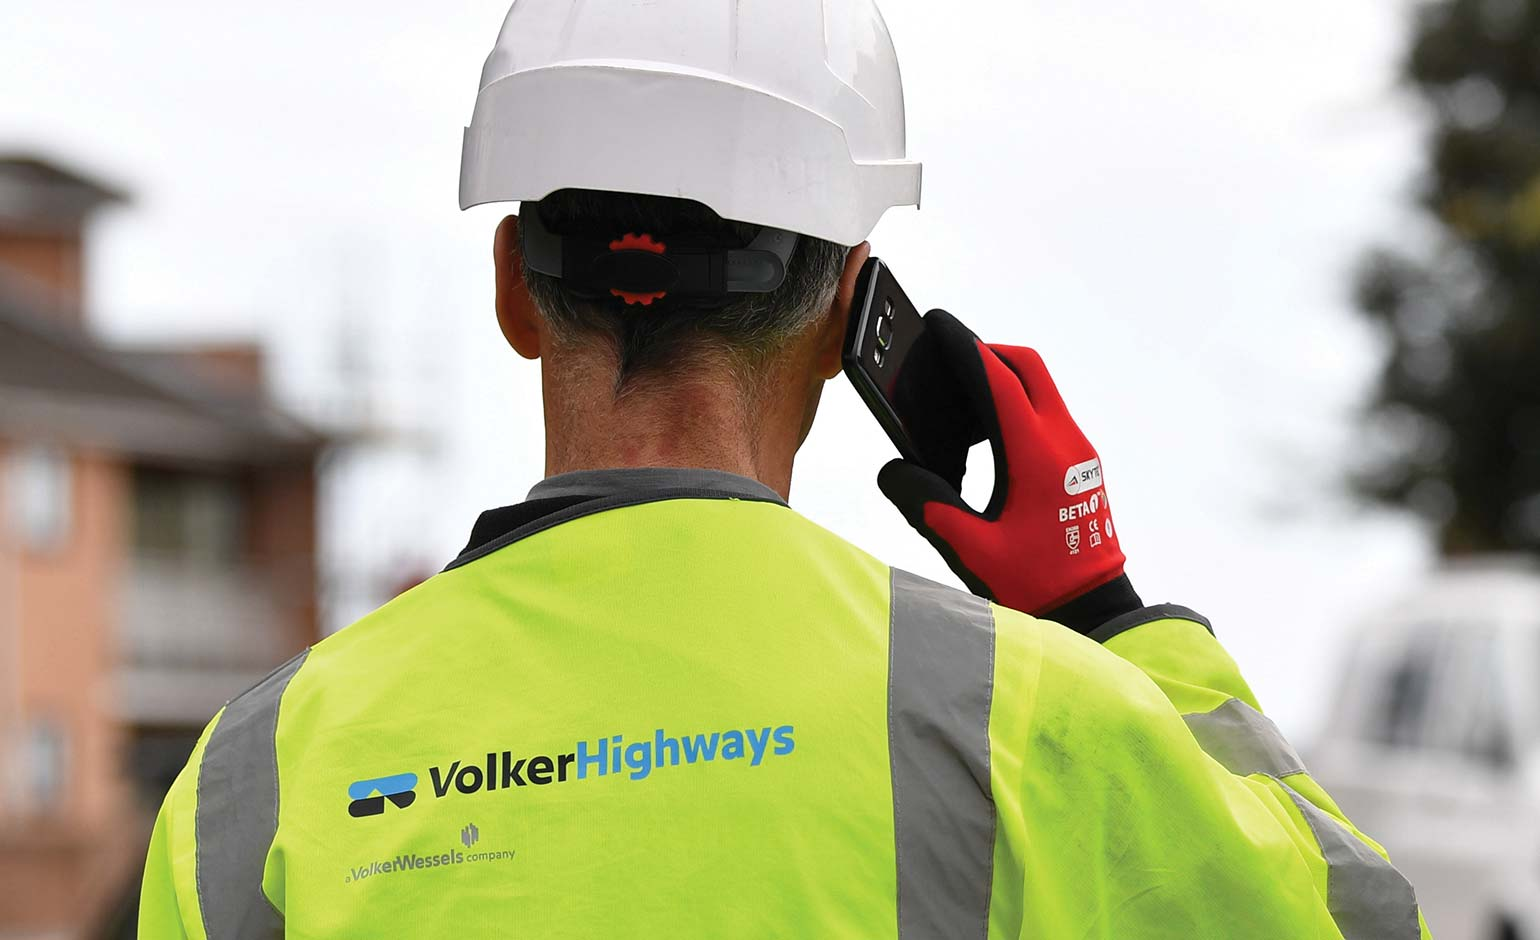 Council awards new seven-year £49m highways contract to VolkerHighways